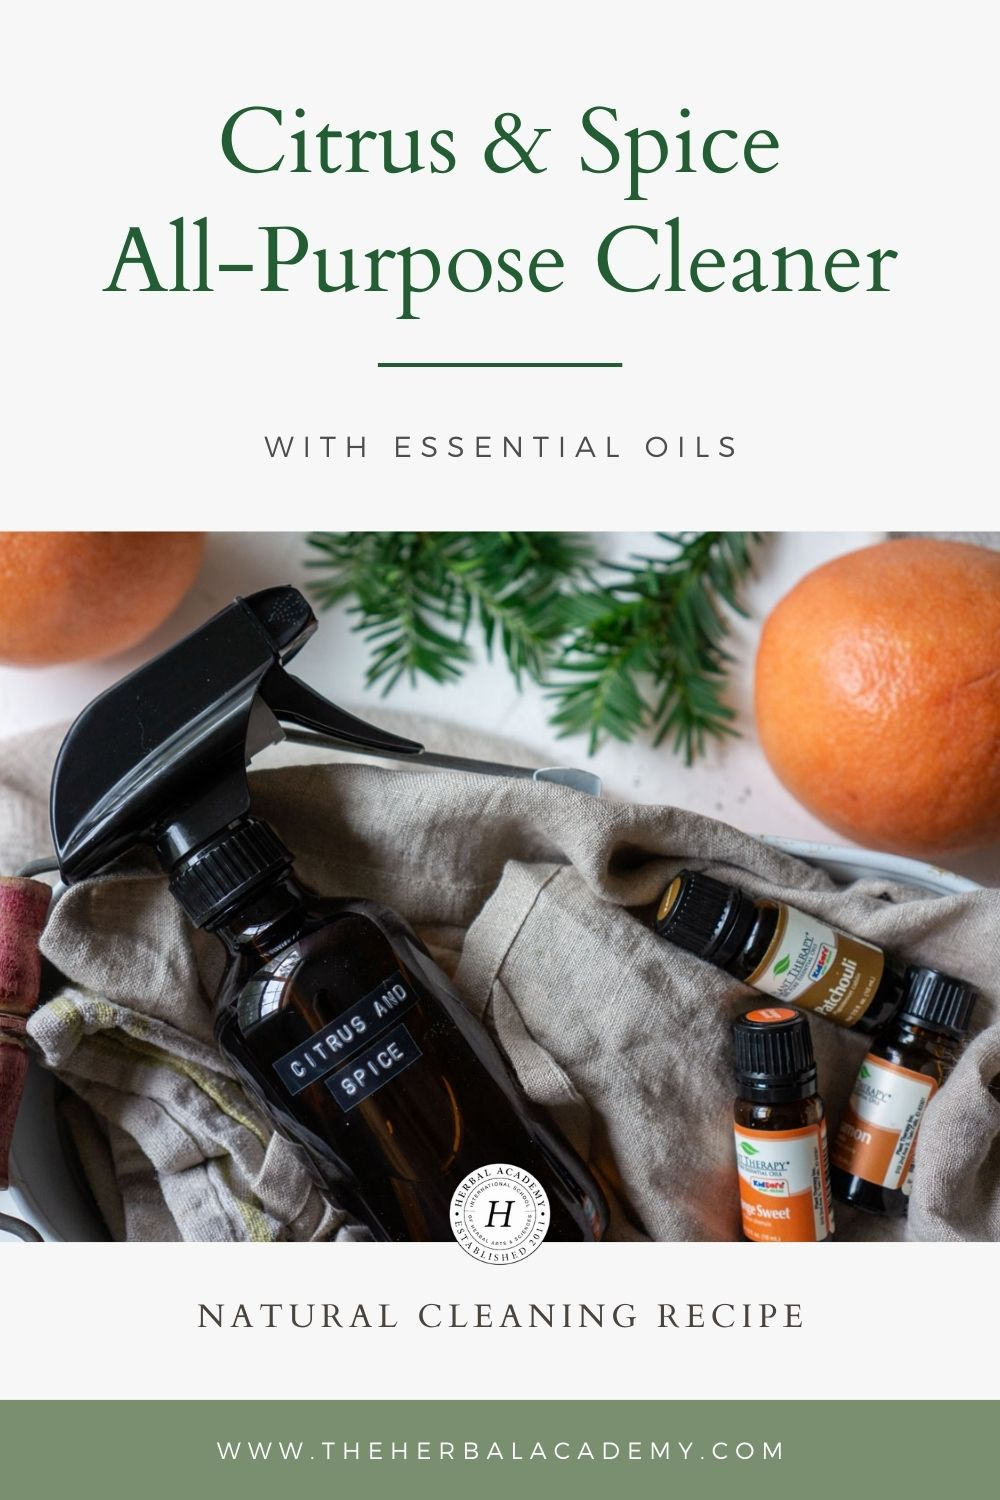 Citrus and Spice: DIY All-Purpose Cleaner | Herbal Academy | This Citrus and Spice DIY All-Purpose Cleaner recipes uses essential oils and is a wonderful option for cleaning most hard surfaces.